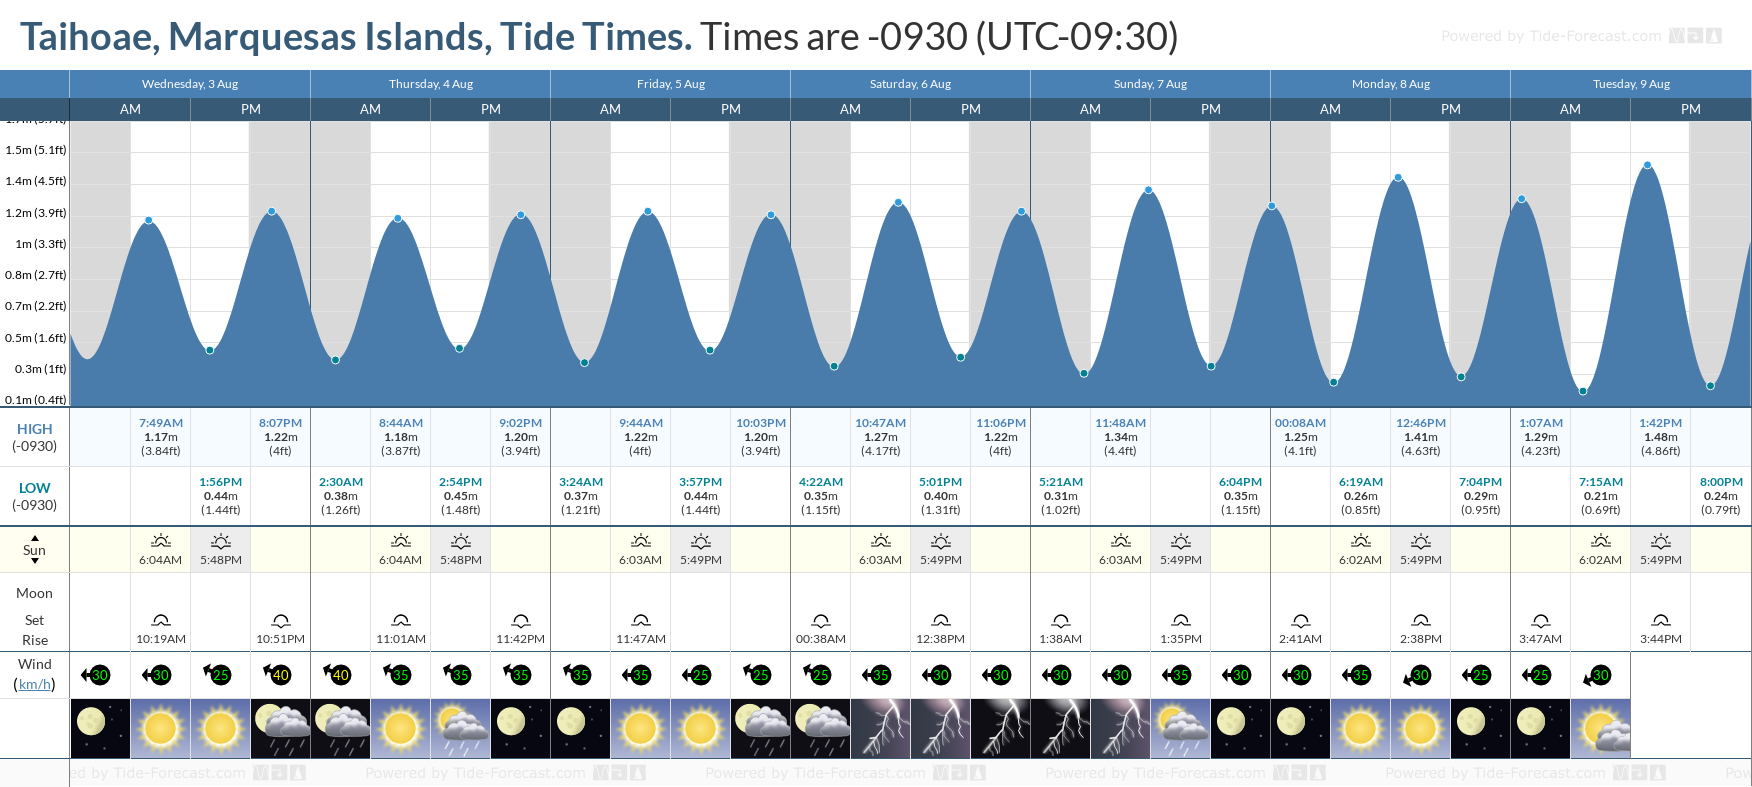 Taihoae, Marquesas Islands Tide Chart including high and low tide tide times for the next 7 days